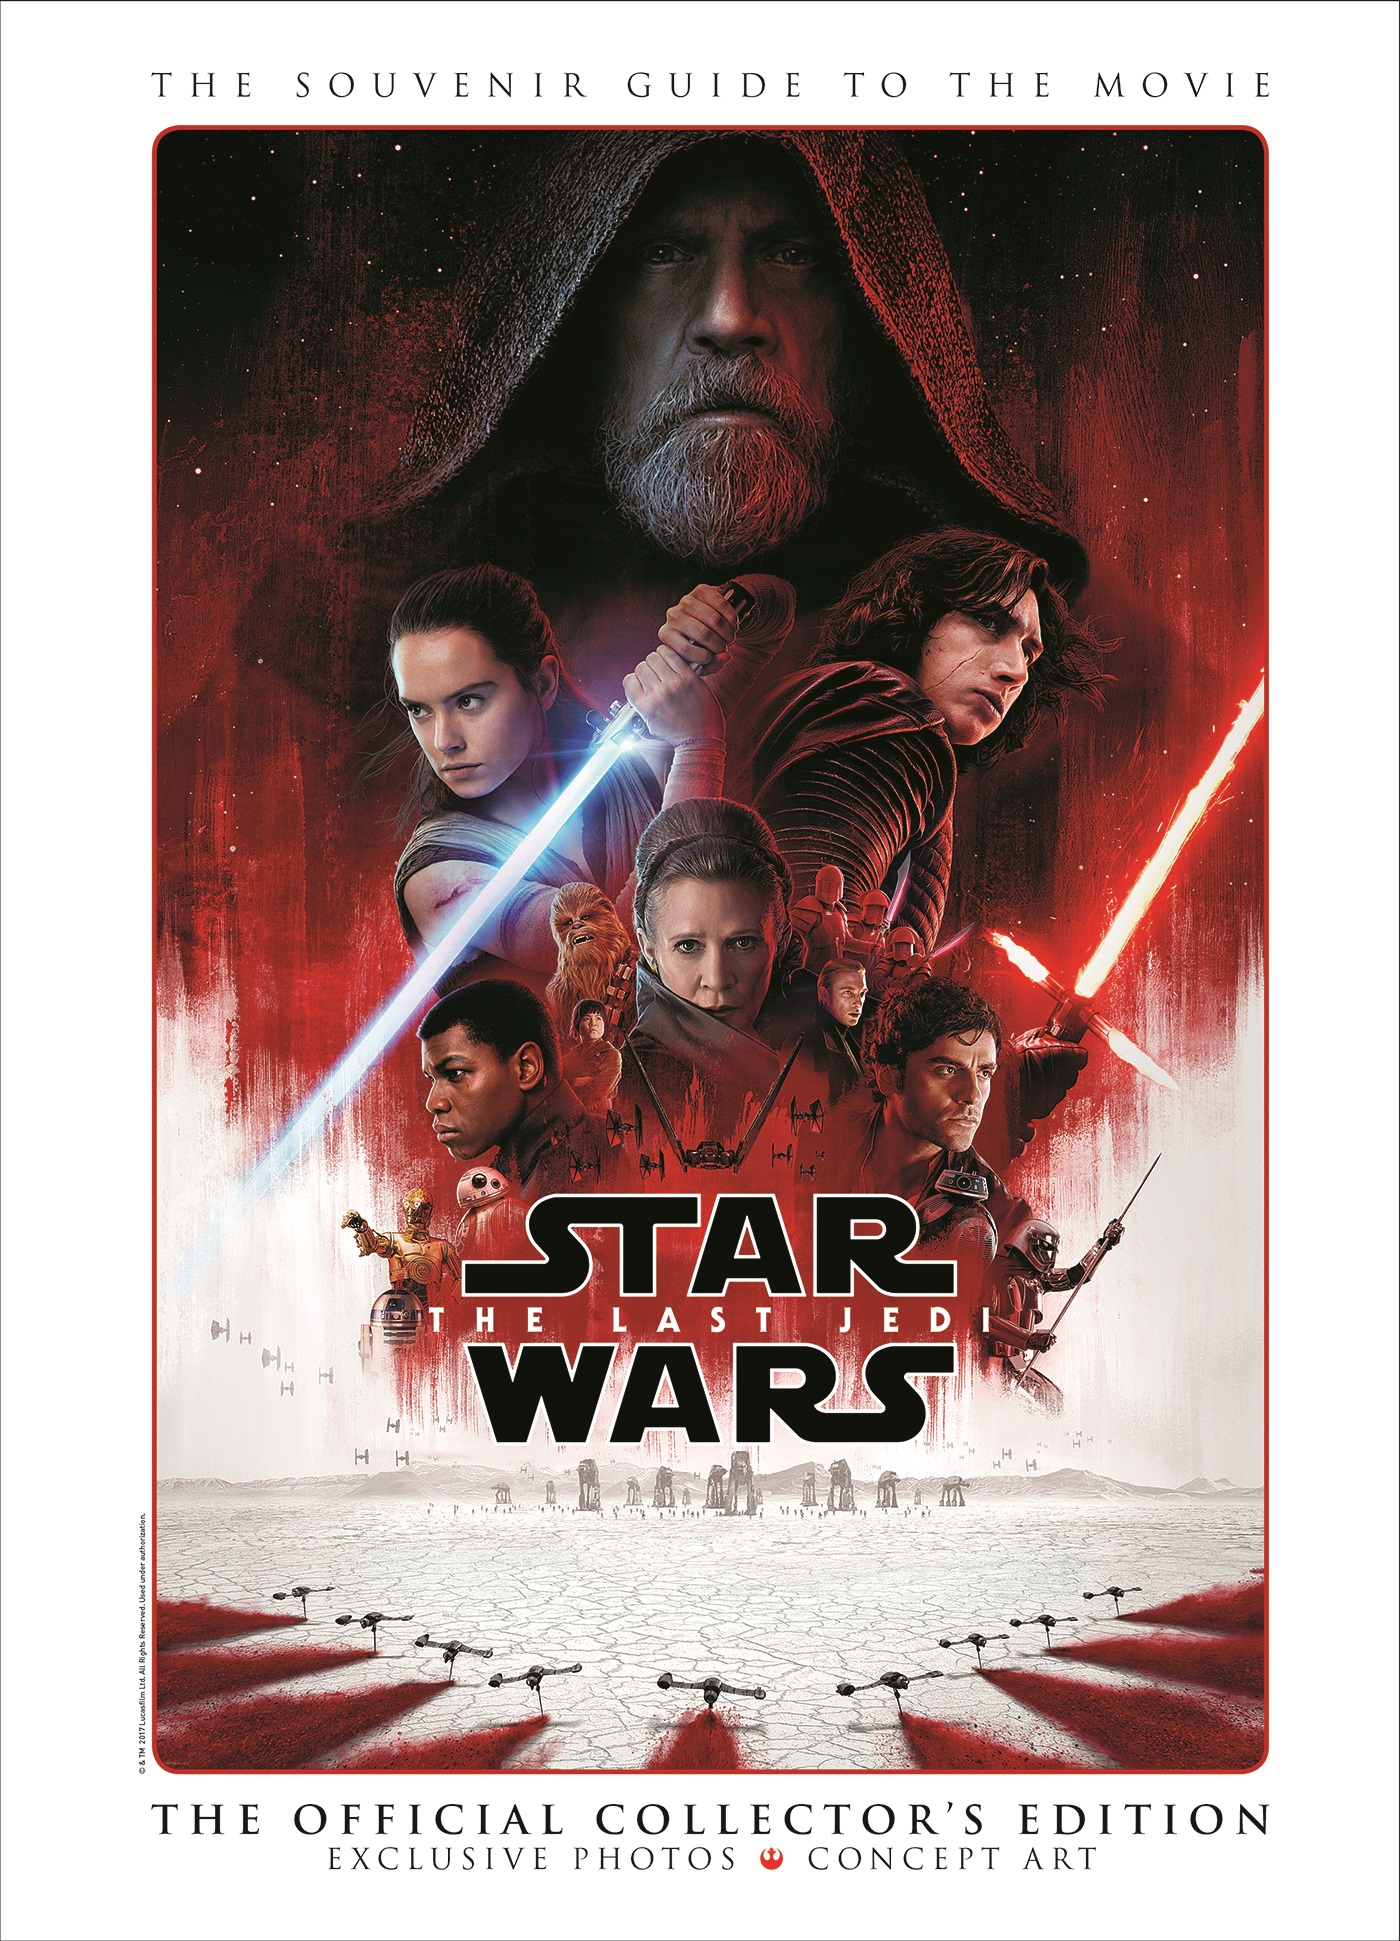 Star Wars: The Last Jedi – The Official Collector's Edition